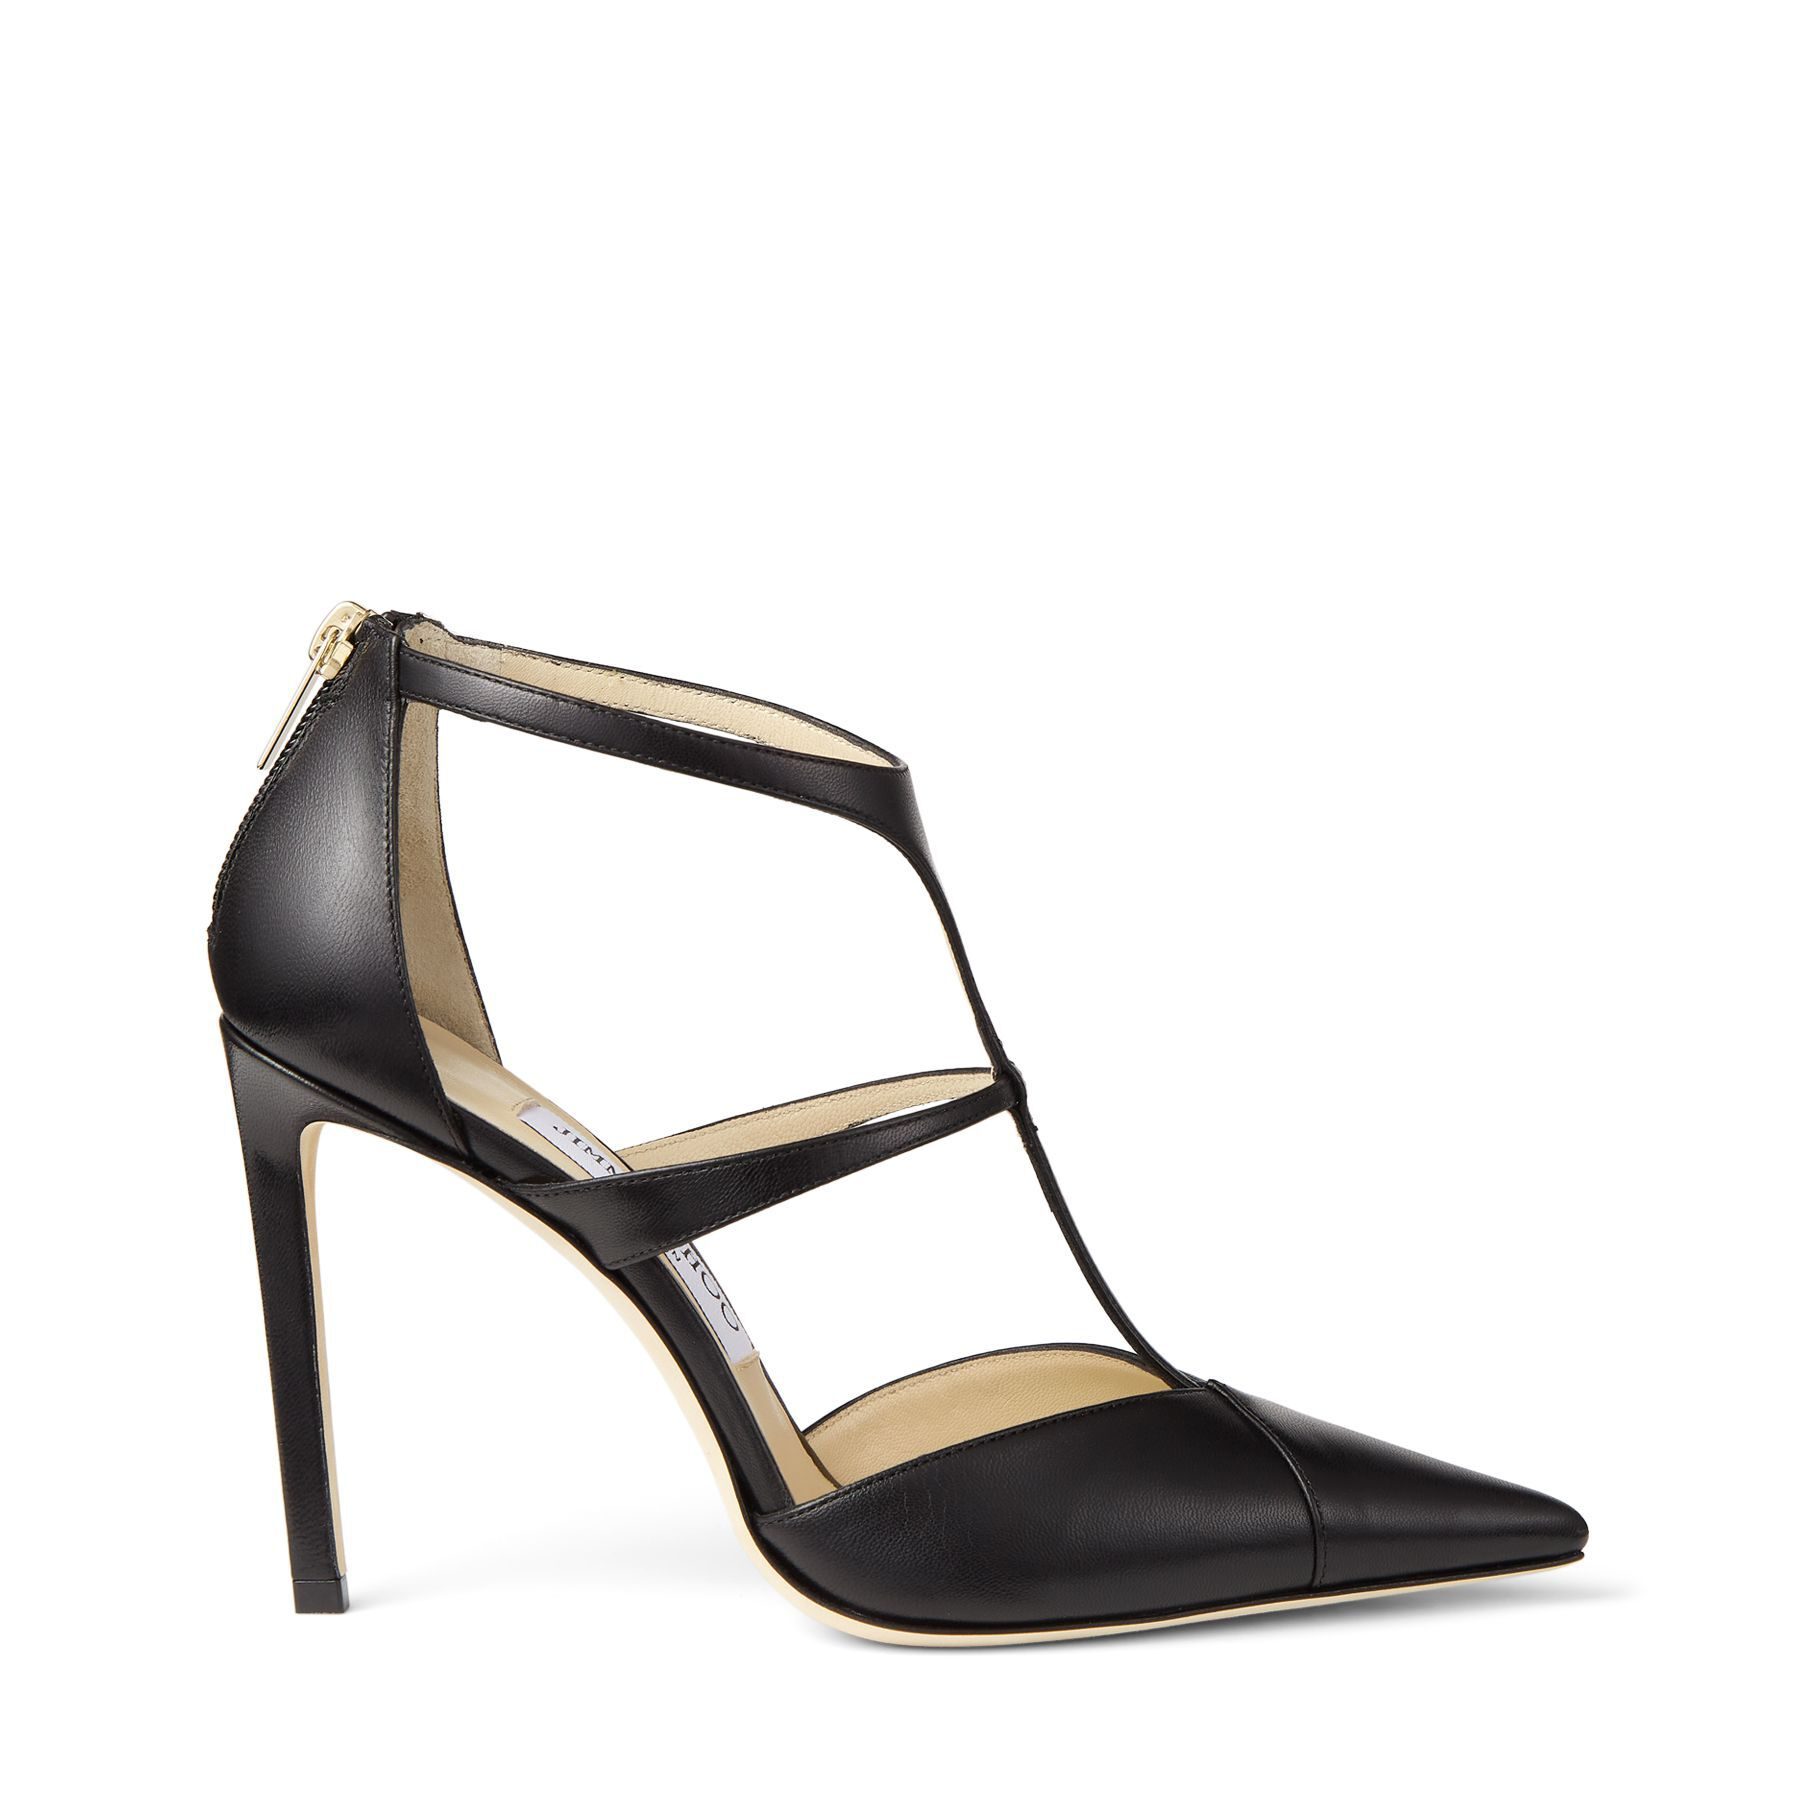 JIMMY CHOO - Official Online Boutique